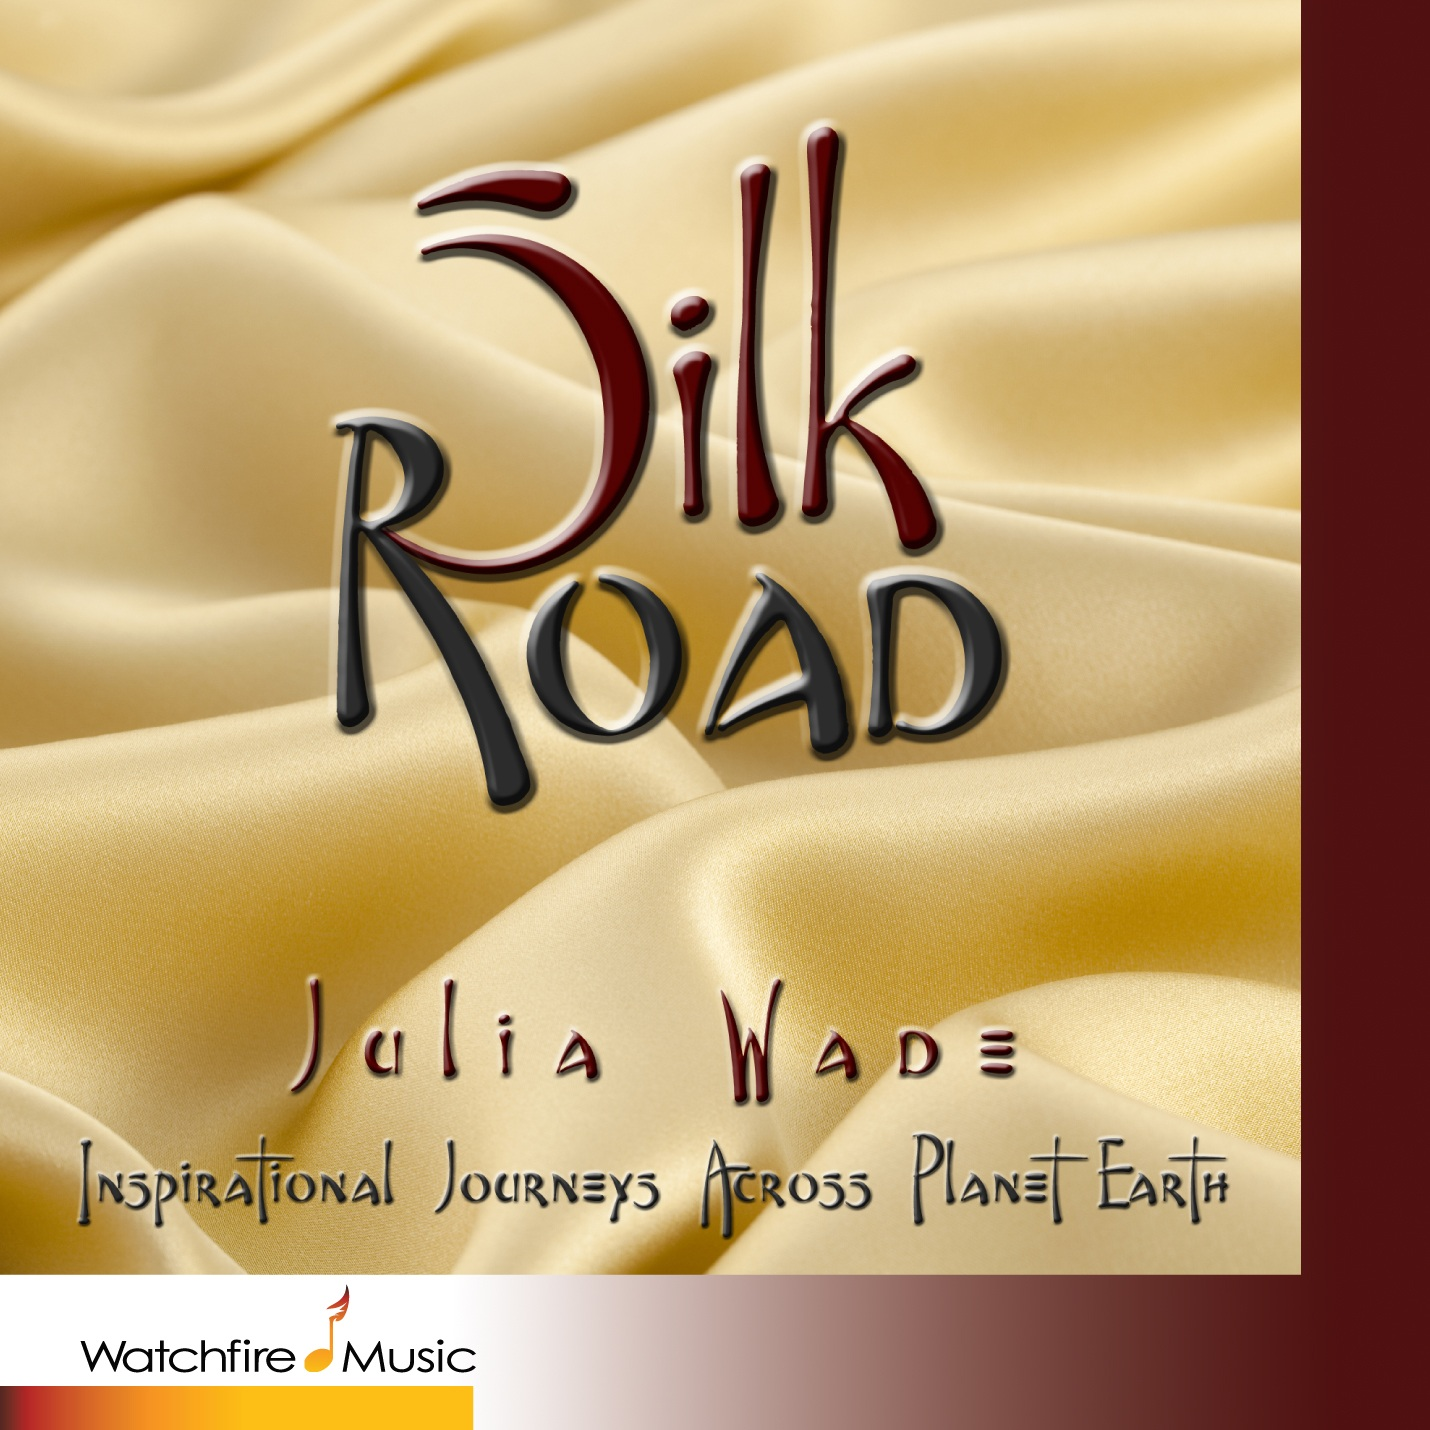 Silk Road - Inspirational Journeys Across Planet Earth